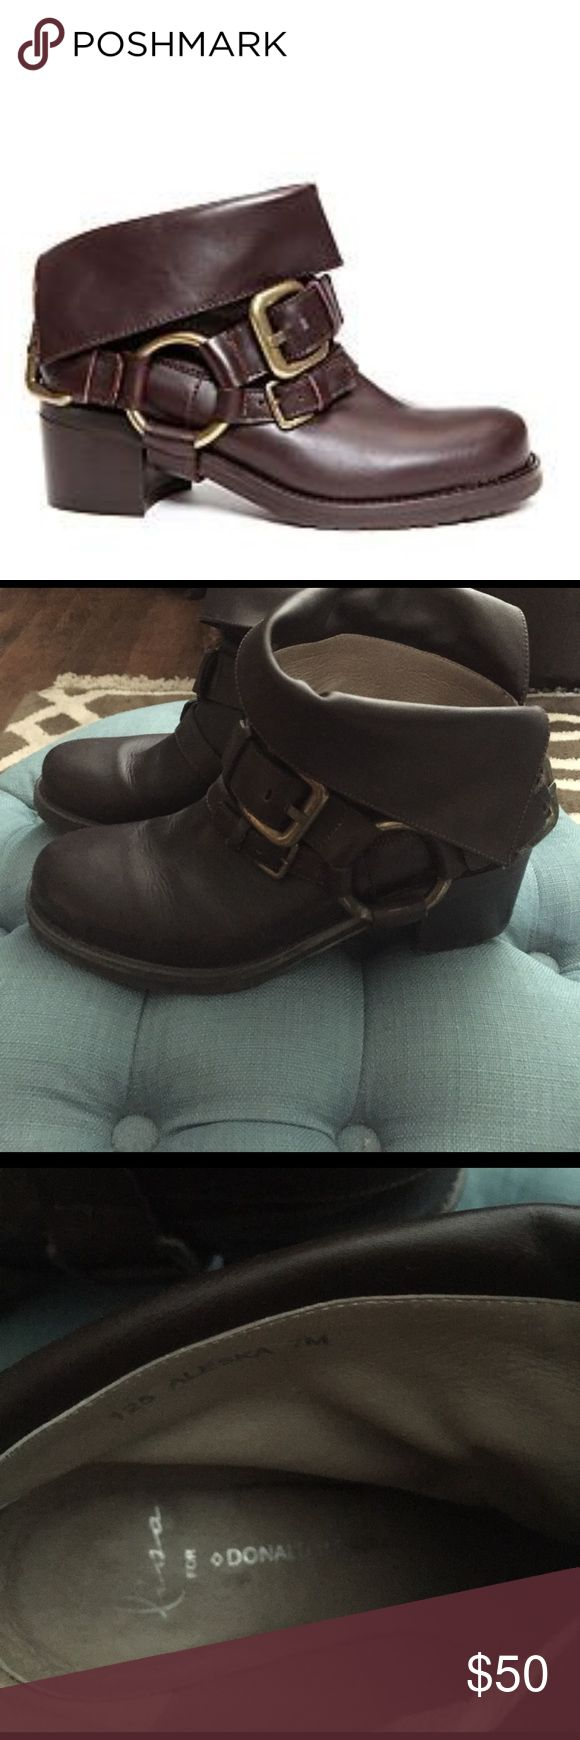 Lisa for Donal J Oliver Alesha brown booties 7 Great boots. Great condition. Leather flap on top can be turned down (turn down for what?!) or popped up for a different look. Dark Hershey bar brown. Wore them2 times Donald J. Pliner Shoes Ankle Boots & Booties